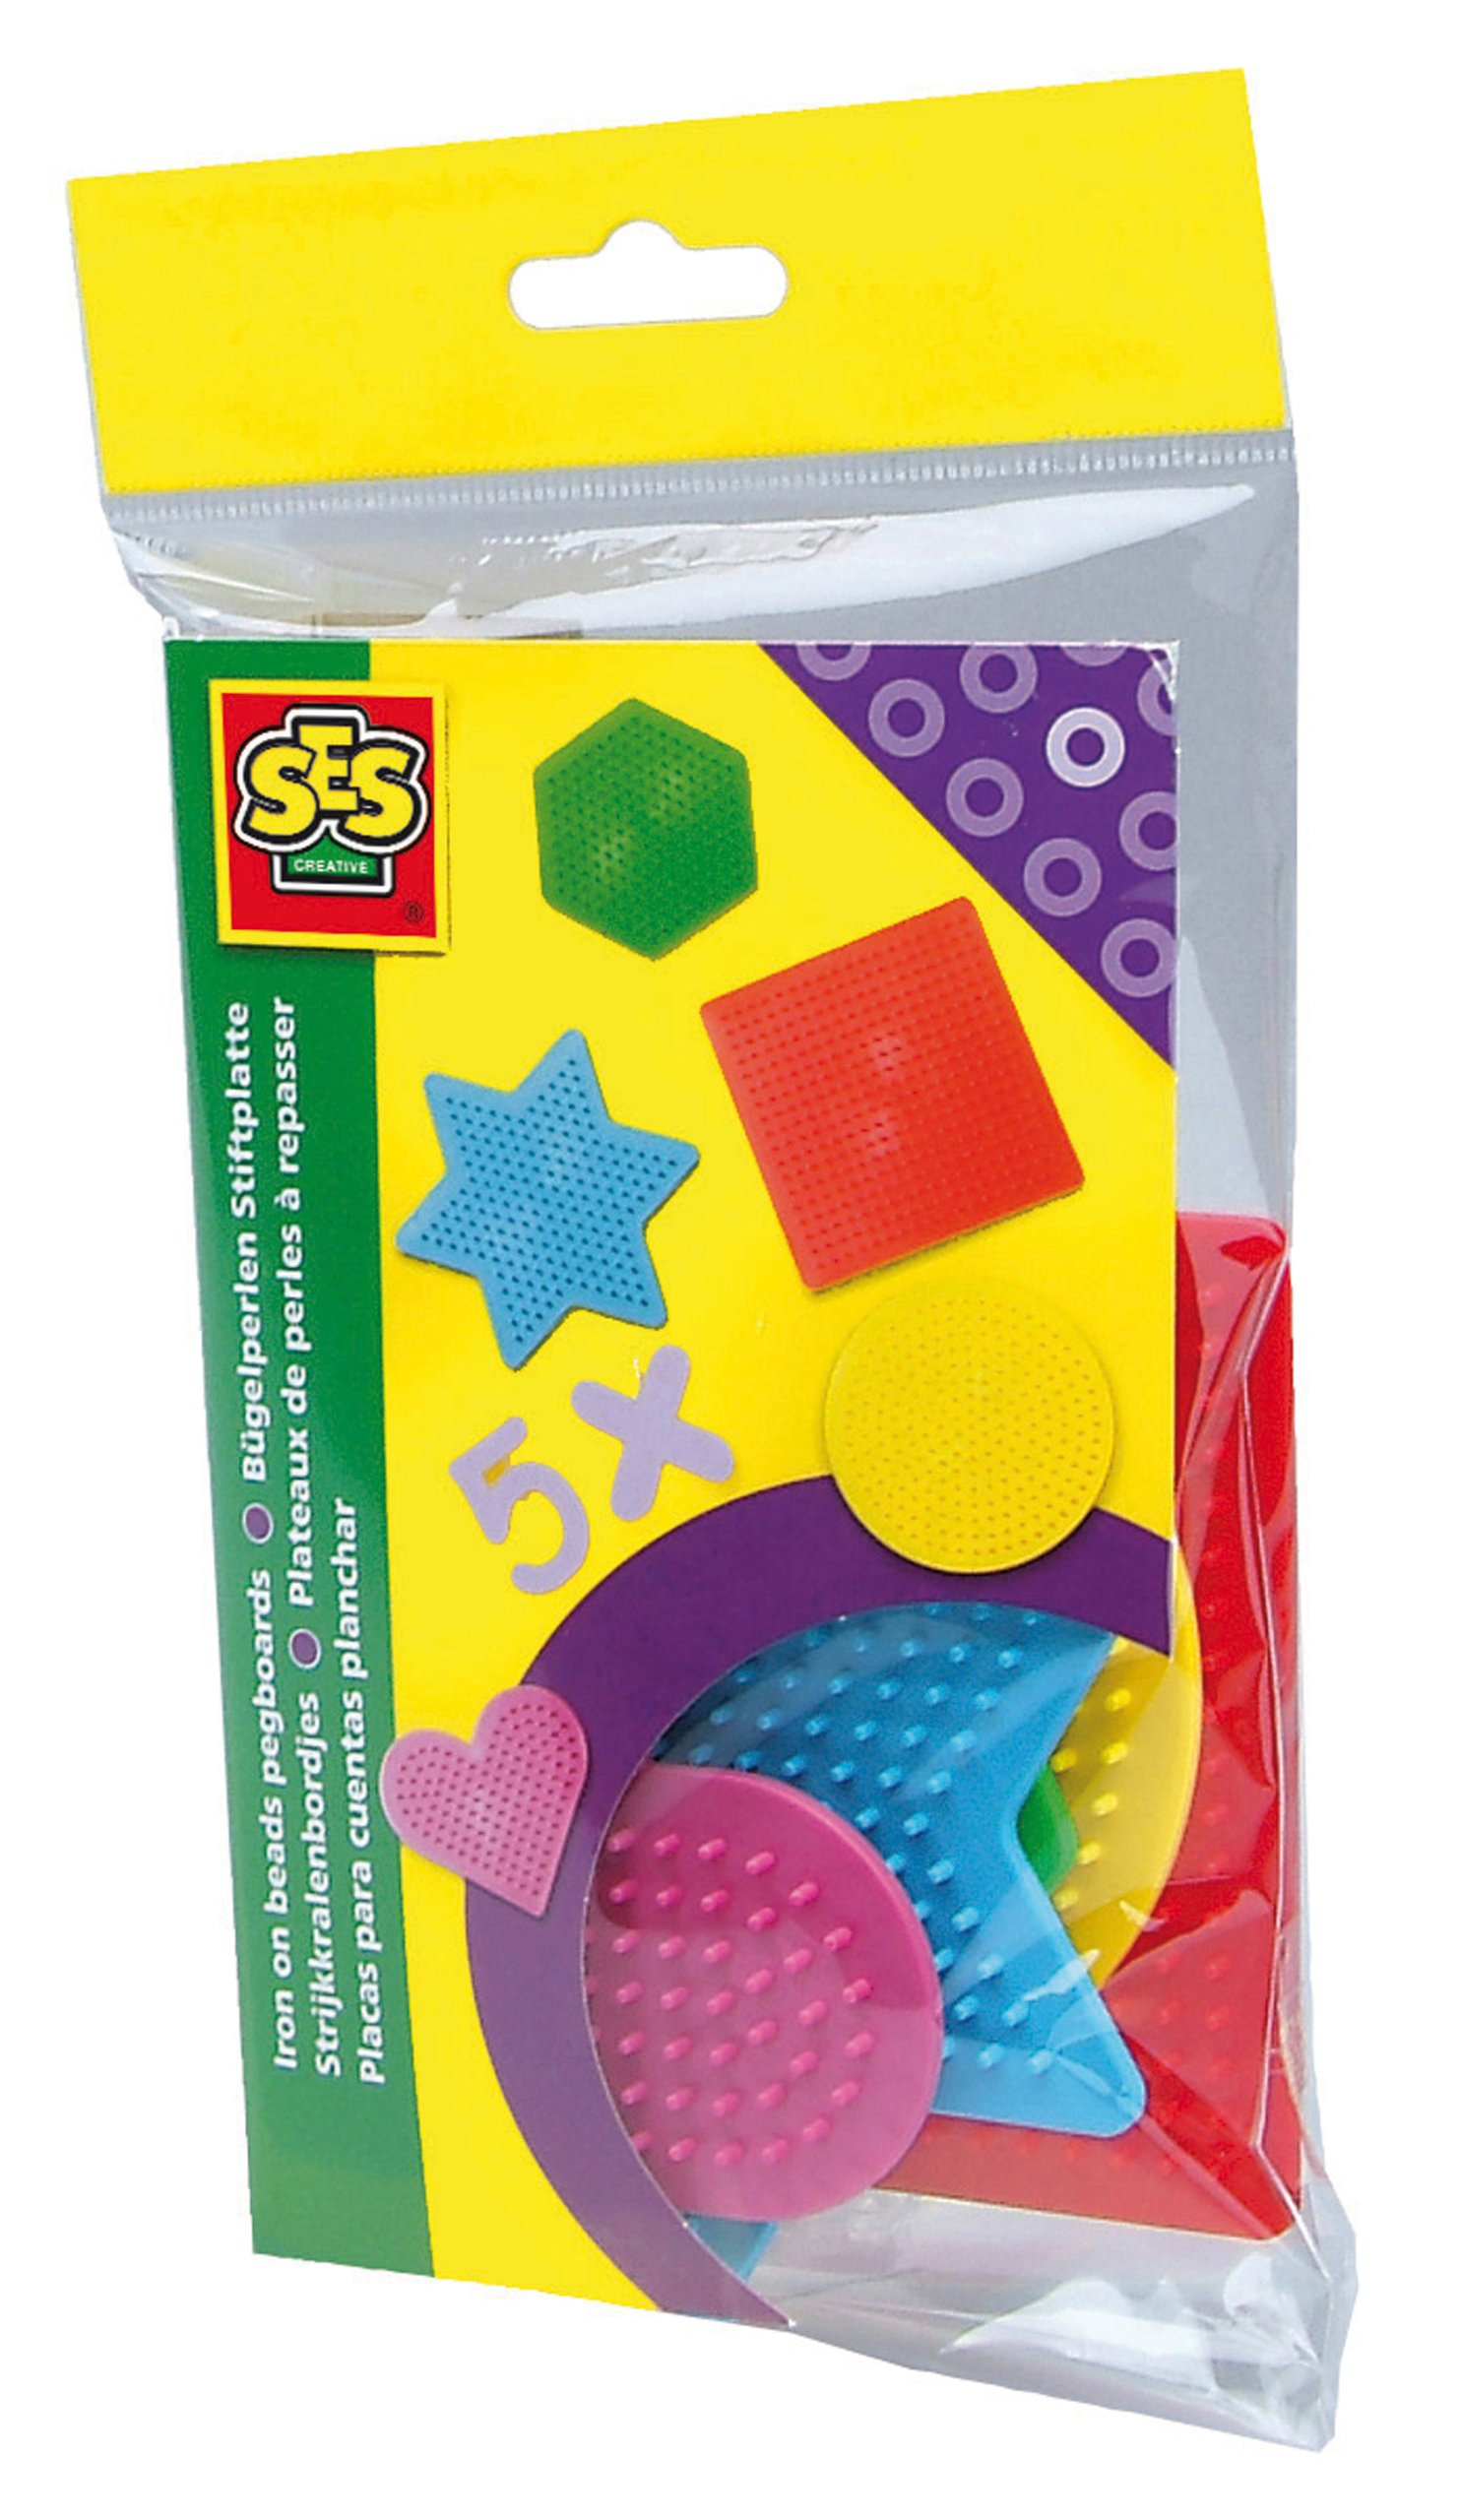 SES Creative Iron On Beads Pegboard - 5 Small Pcs. Arts & Crafts by SES Creative (Image #2)